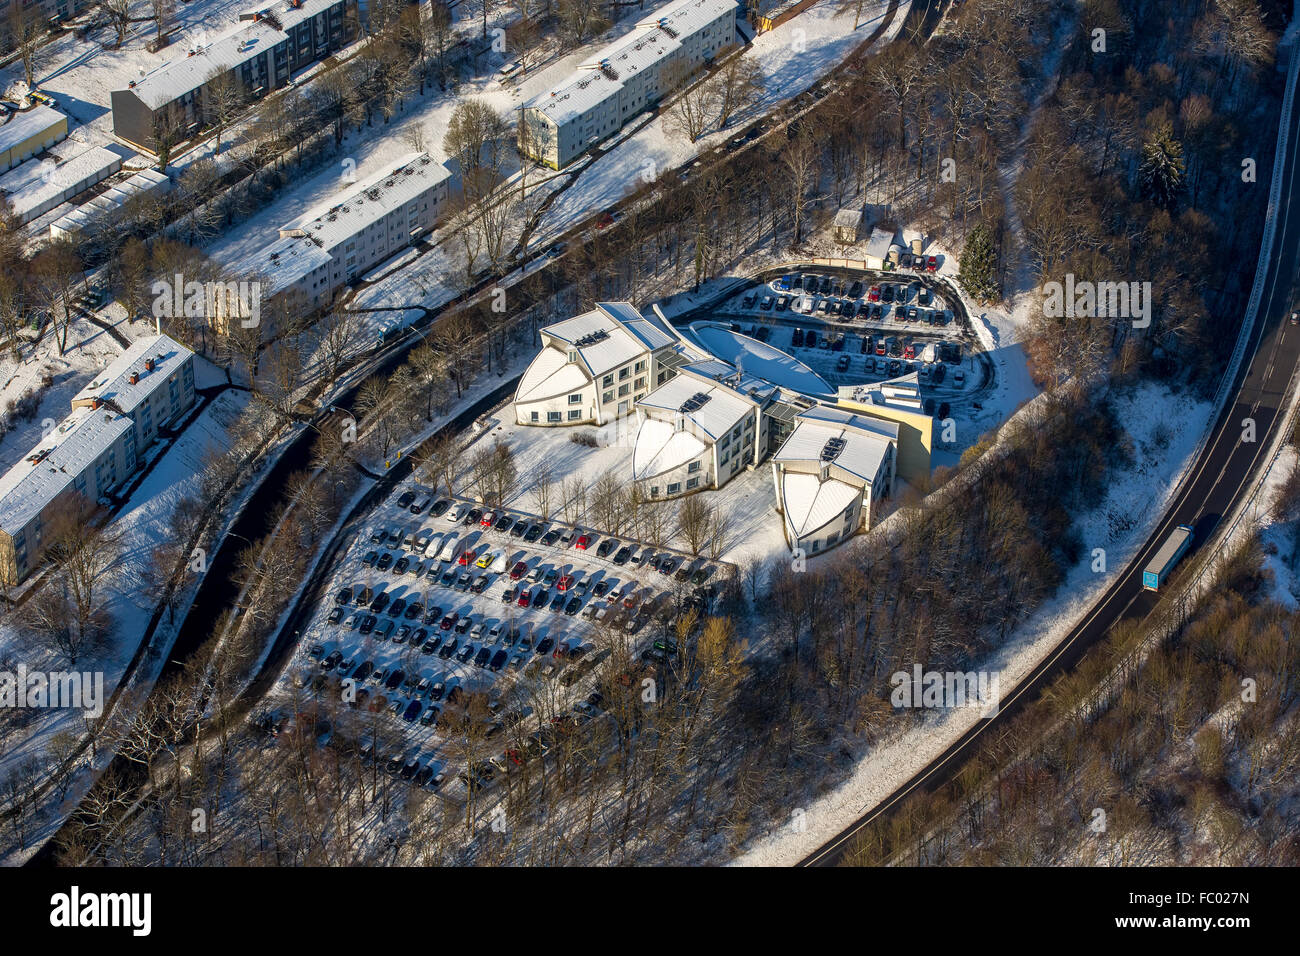 Aerial view, unusual architecture of the Artur-Woll-Haus it, Architekturbüro rough architecten, three wings - Stock Image